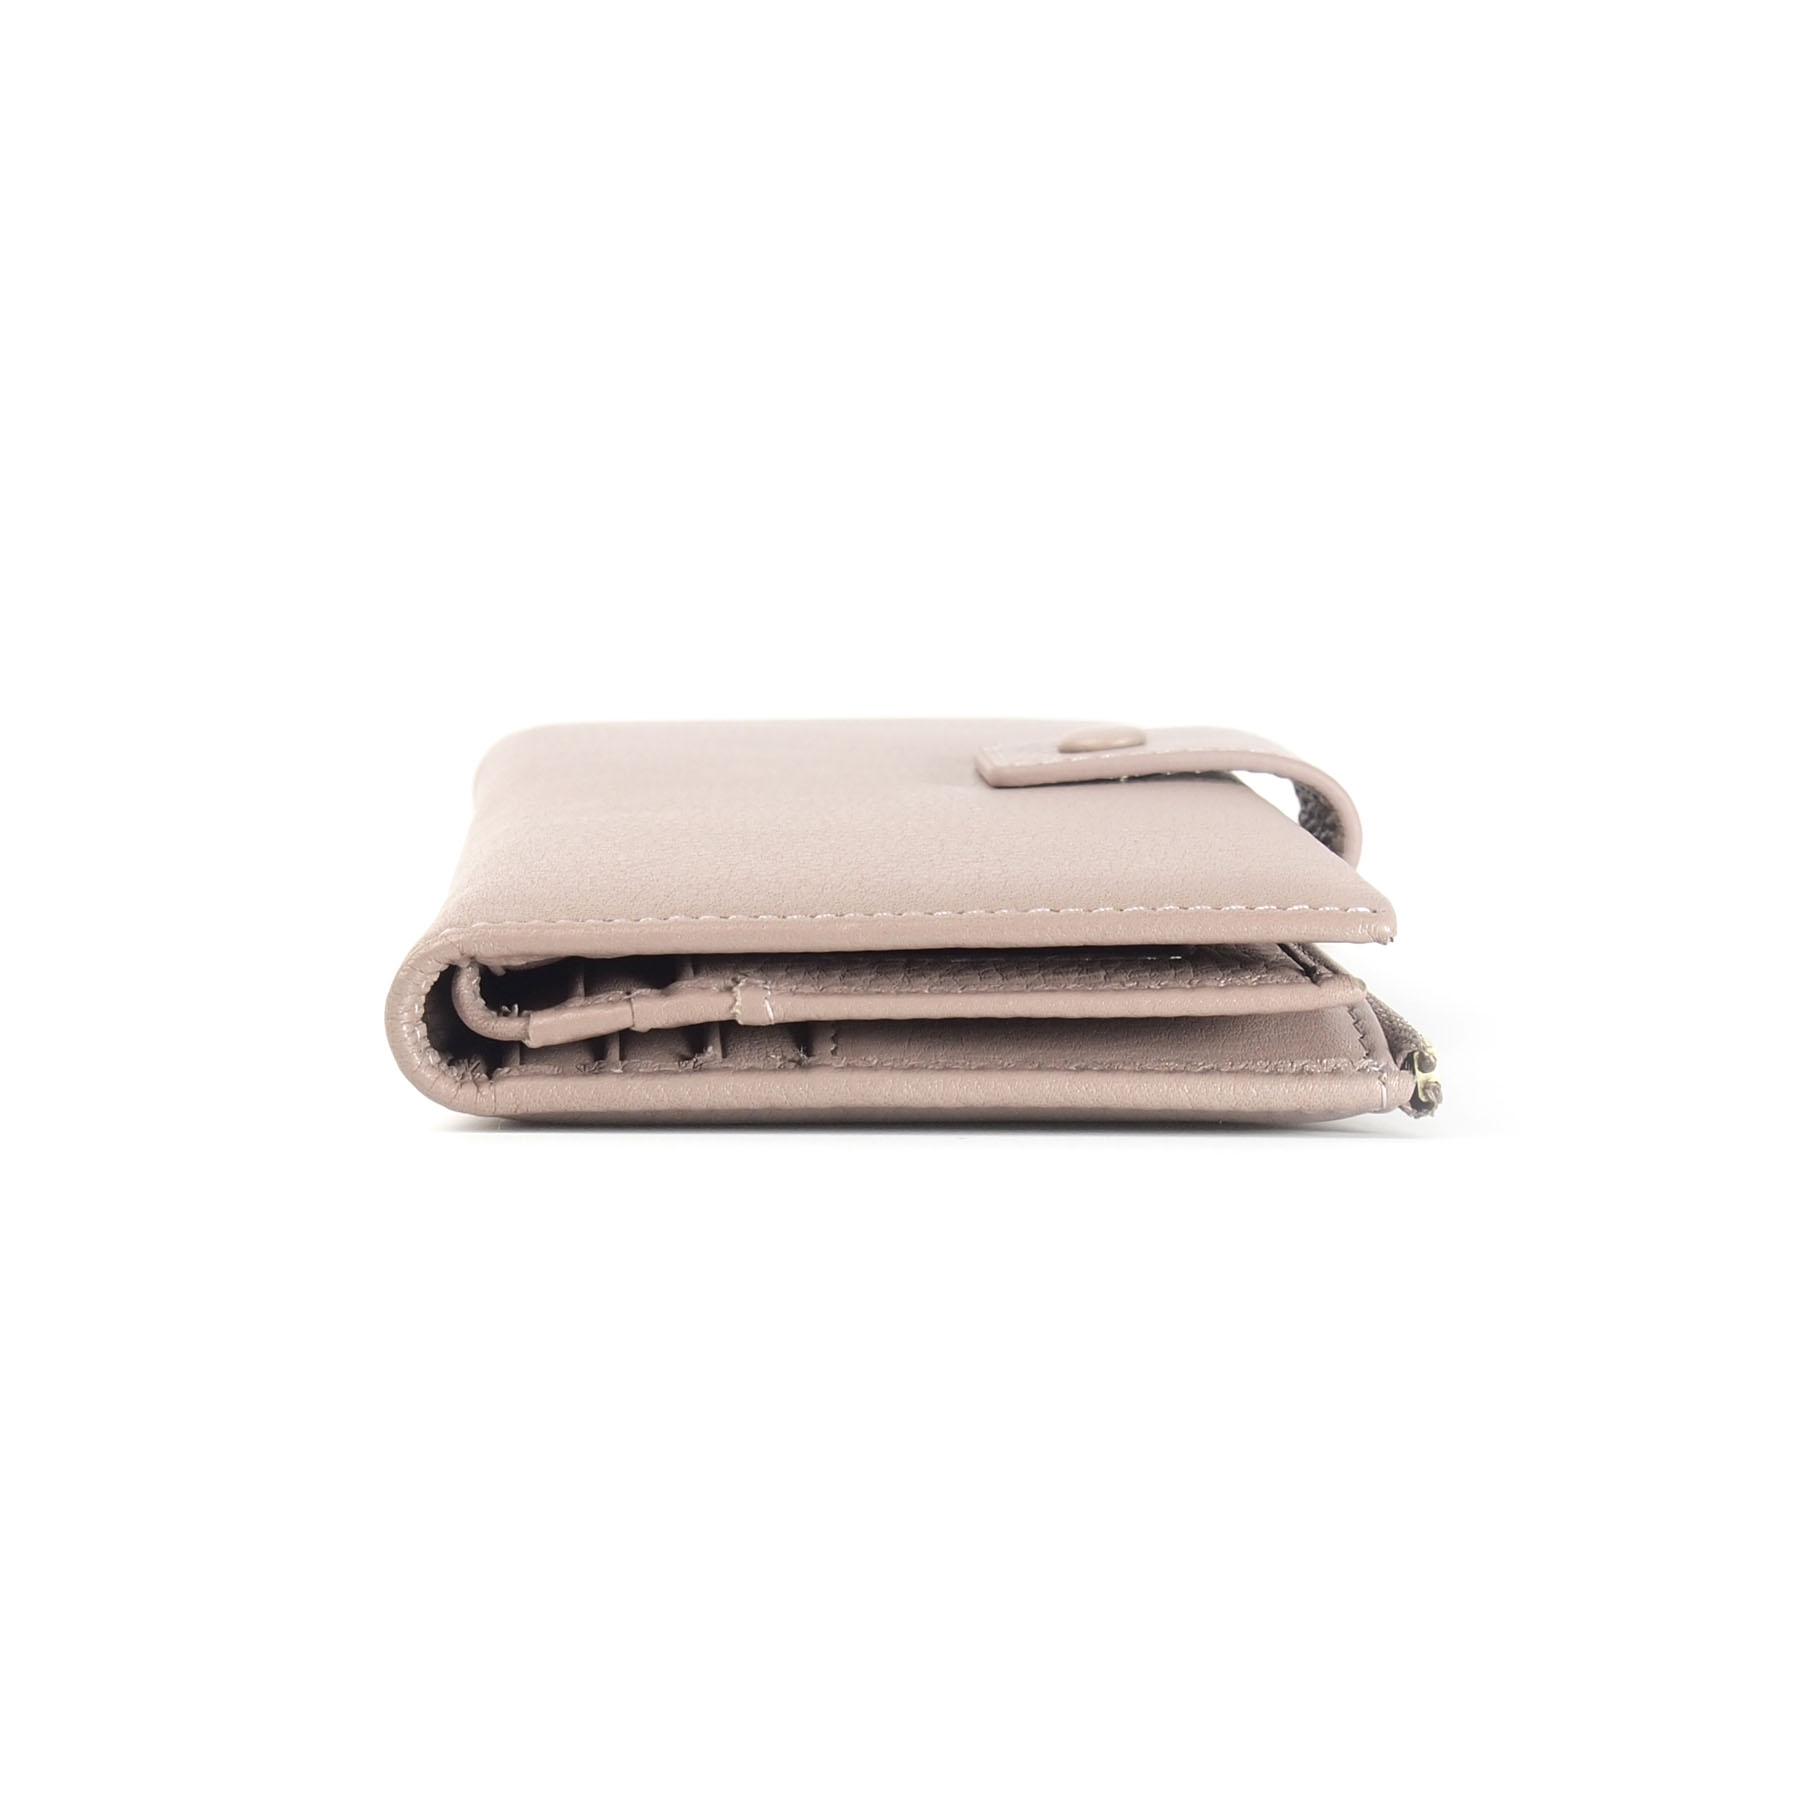 Butterfield Celeste Wallet Front View